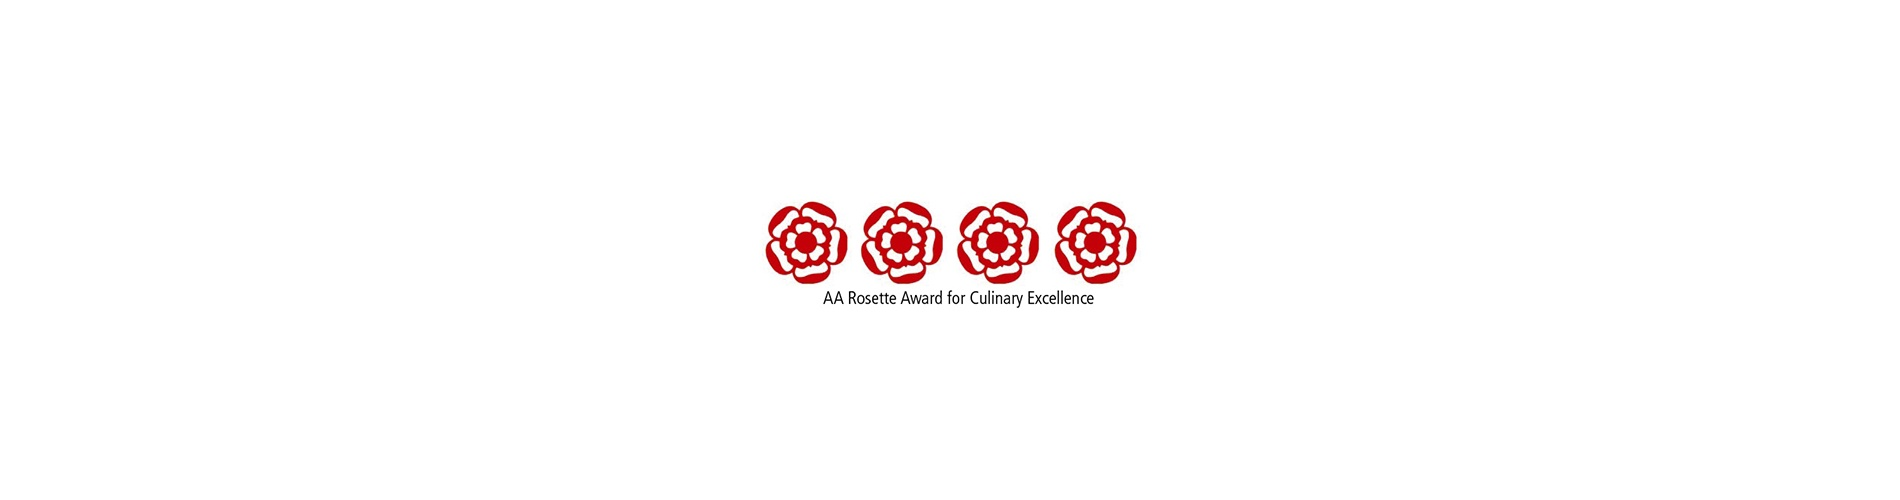 The Forest Side restaurant in Grasmere awarded four AA rosettes